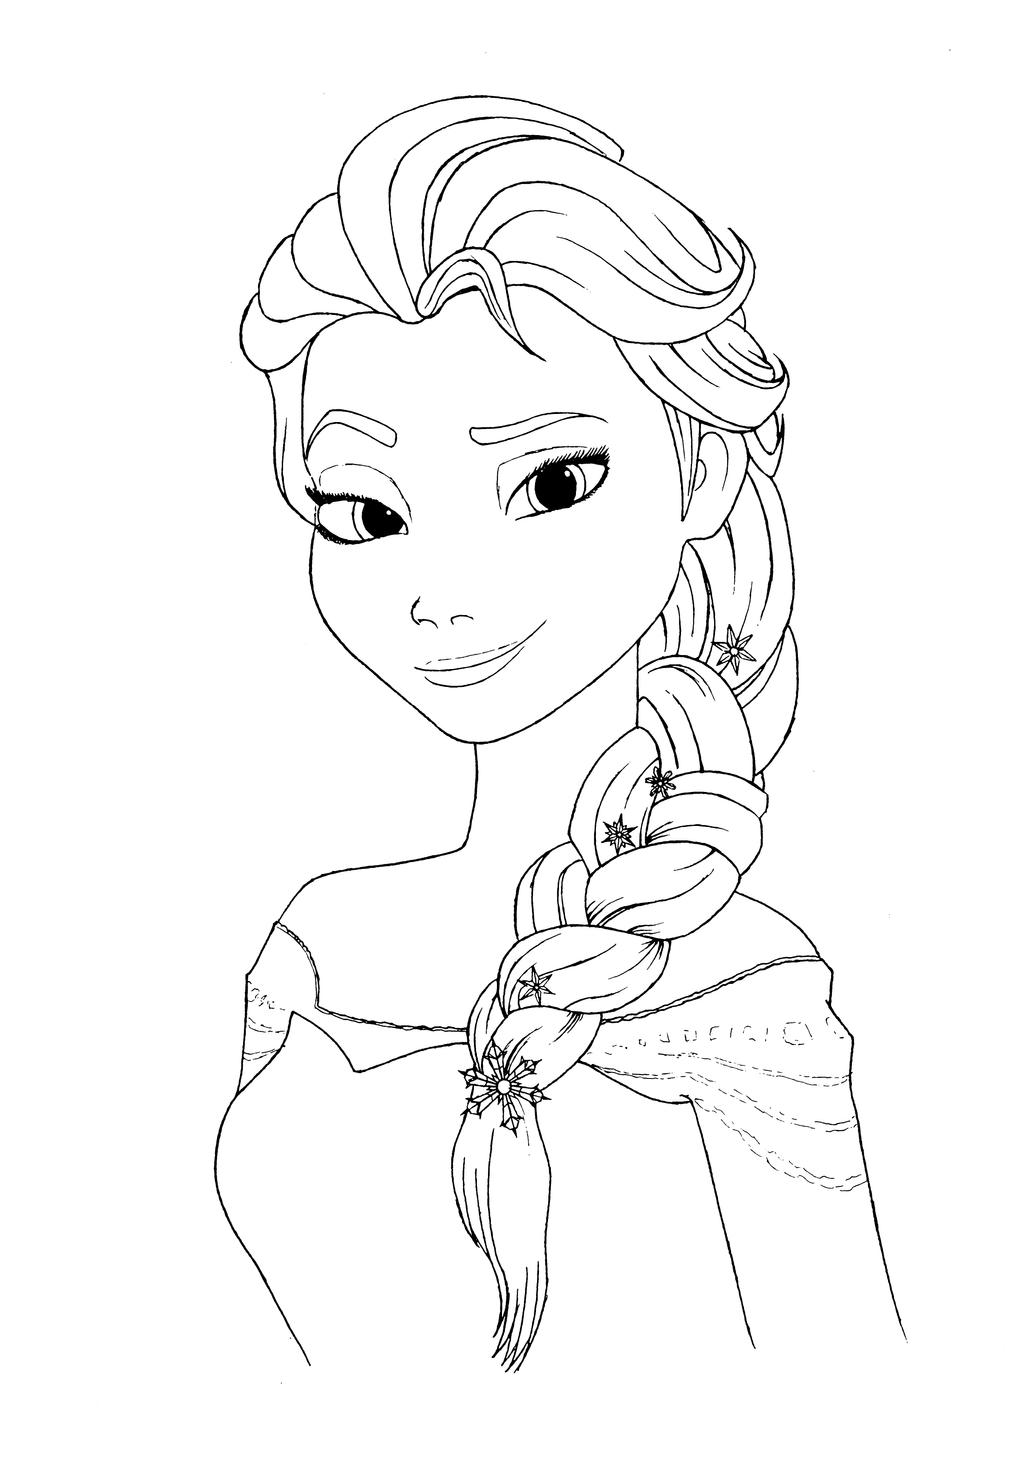 Elsa coloring page by Mortusk on DeviantArt